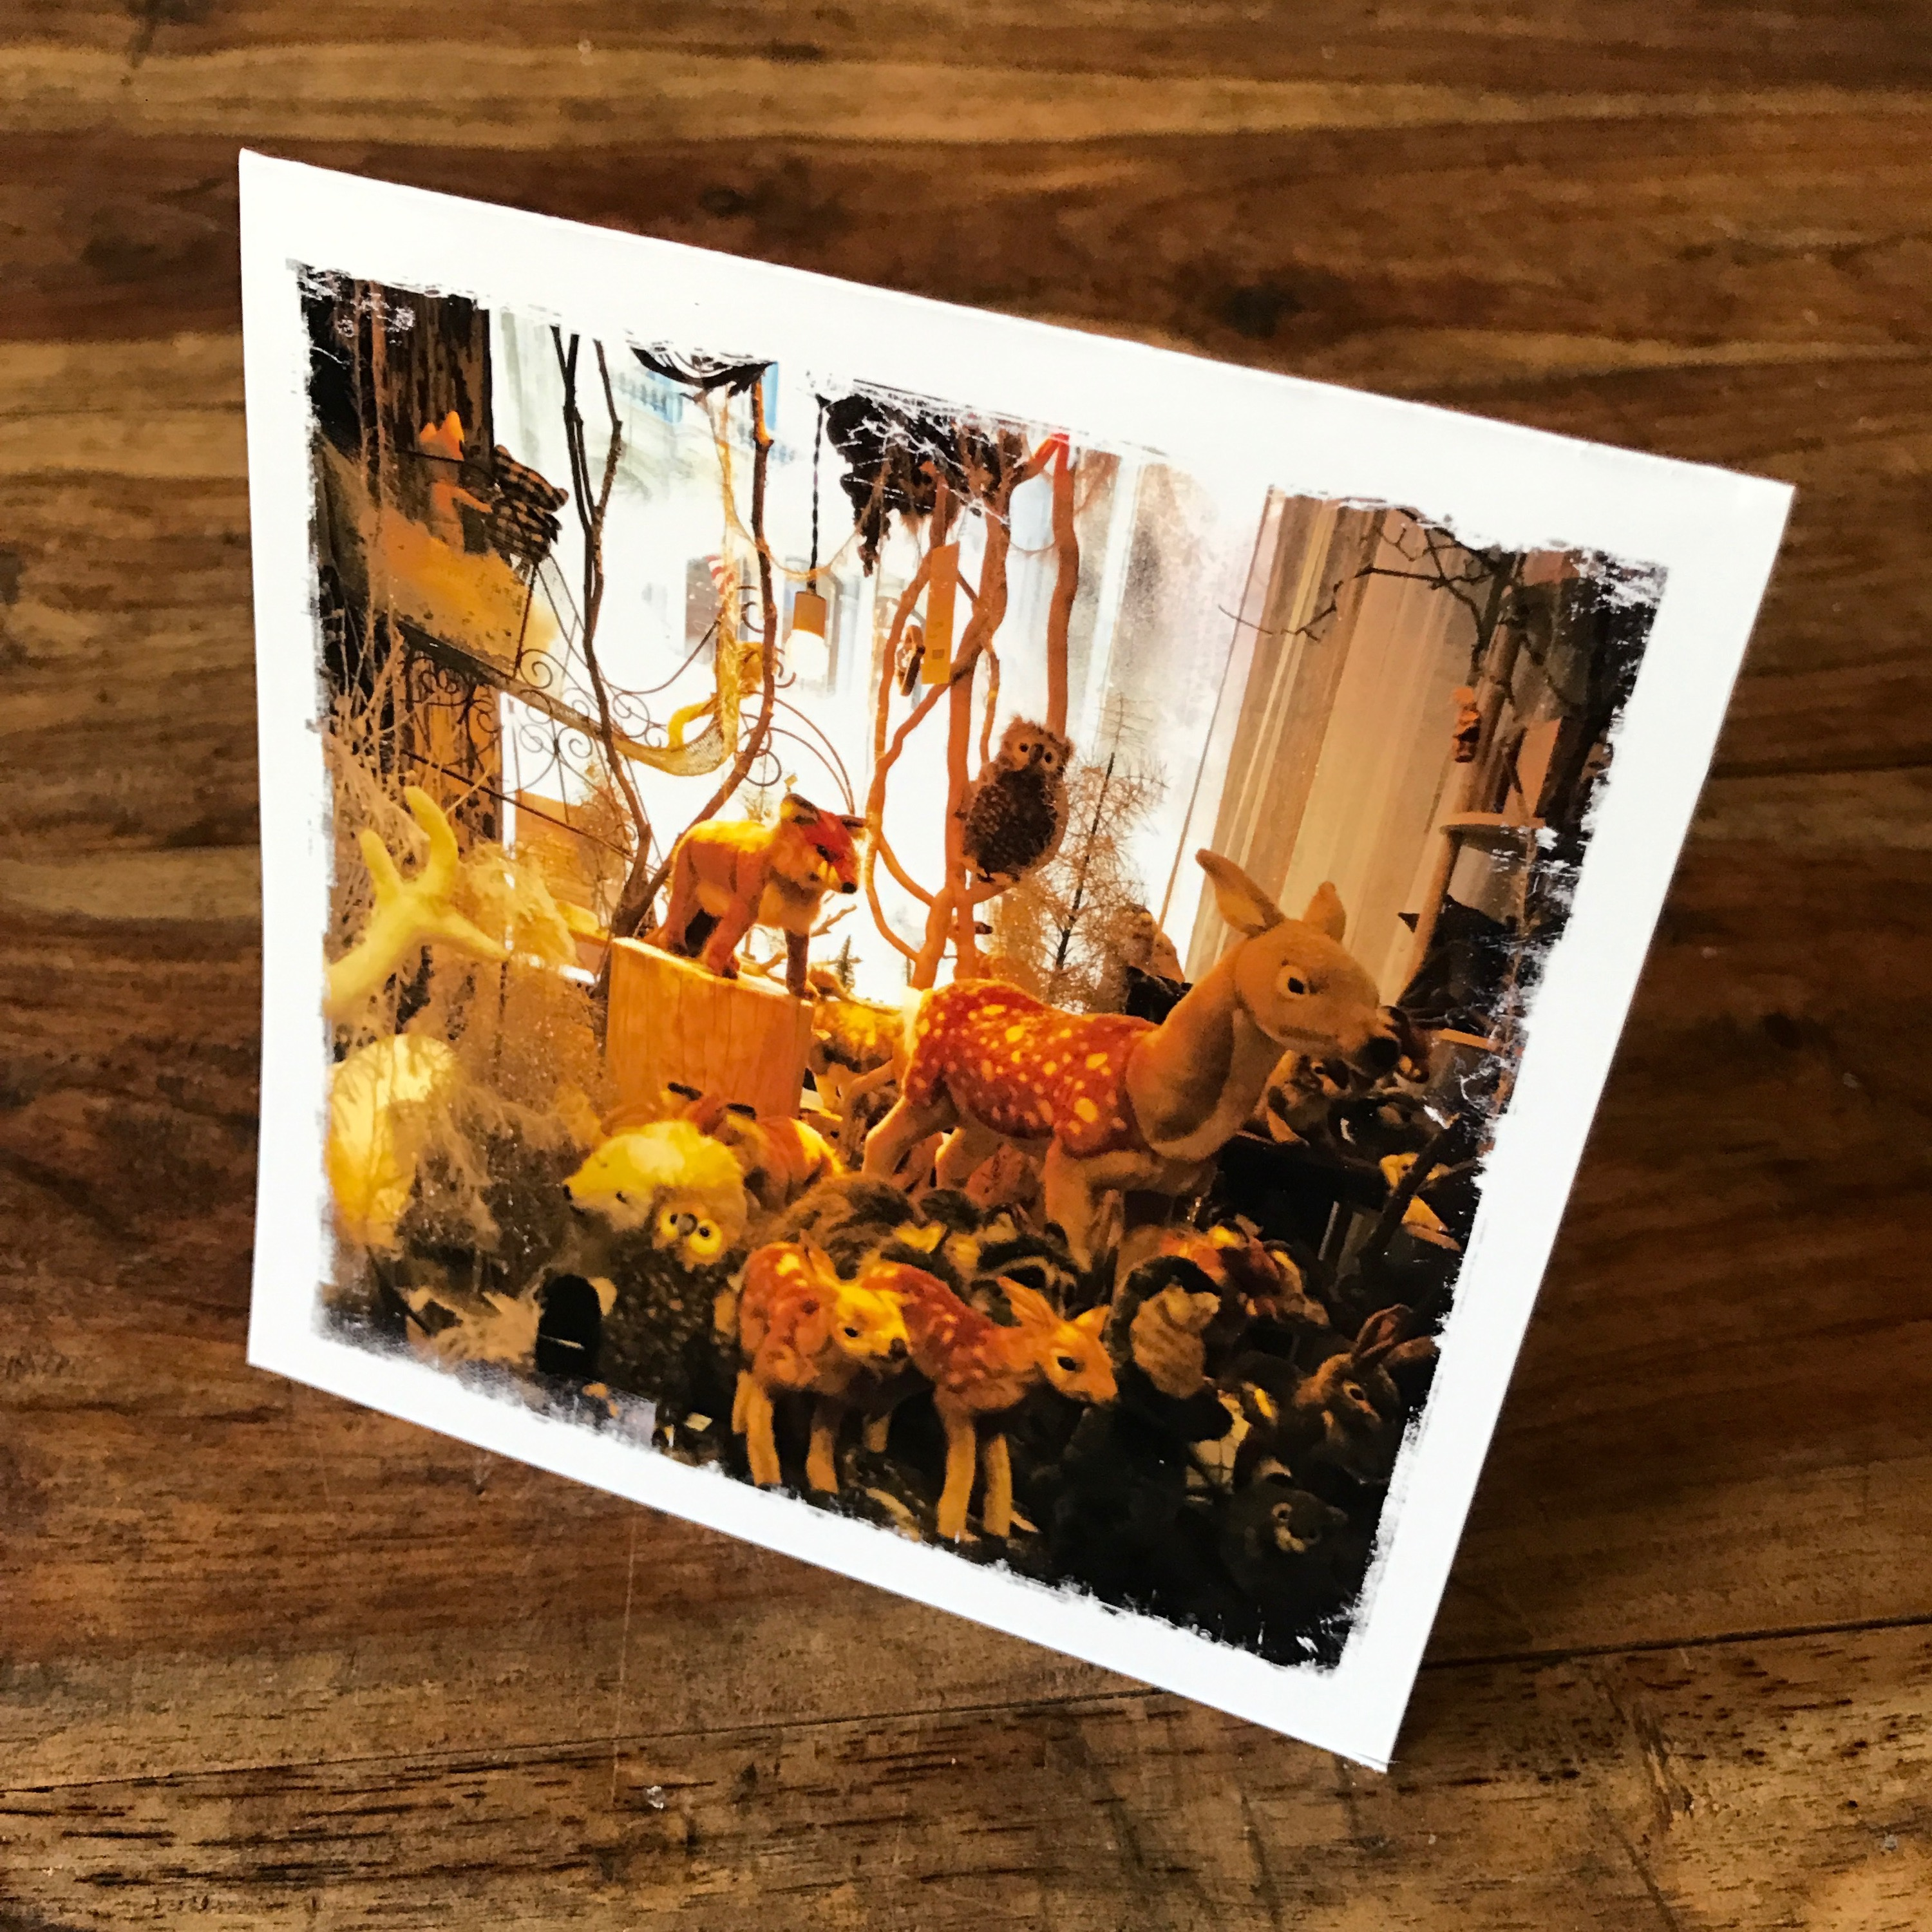 Holiday Menagerie Note Card, ABC Home, NYC, Photo by Barbara Sinclair